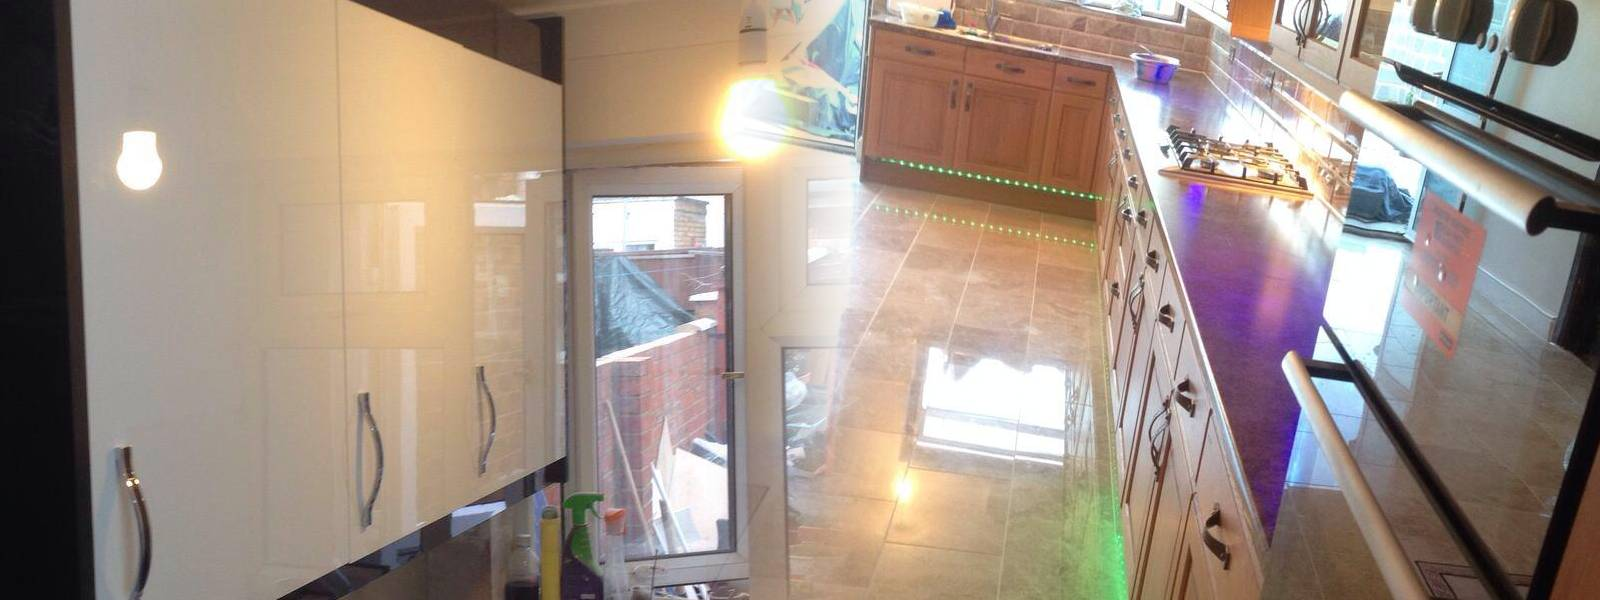 Loft Conversion and Extension - Services in Barking - Dagenham